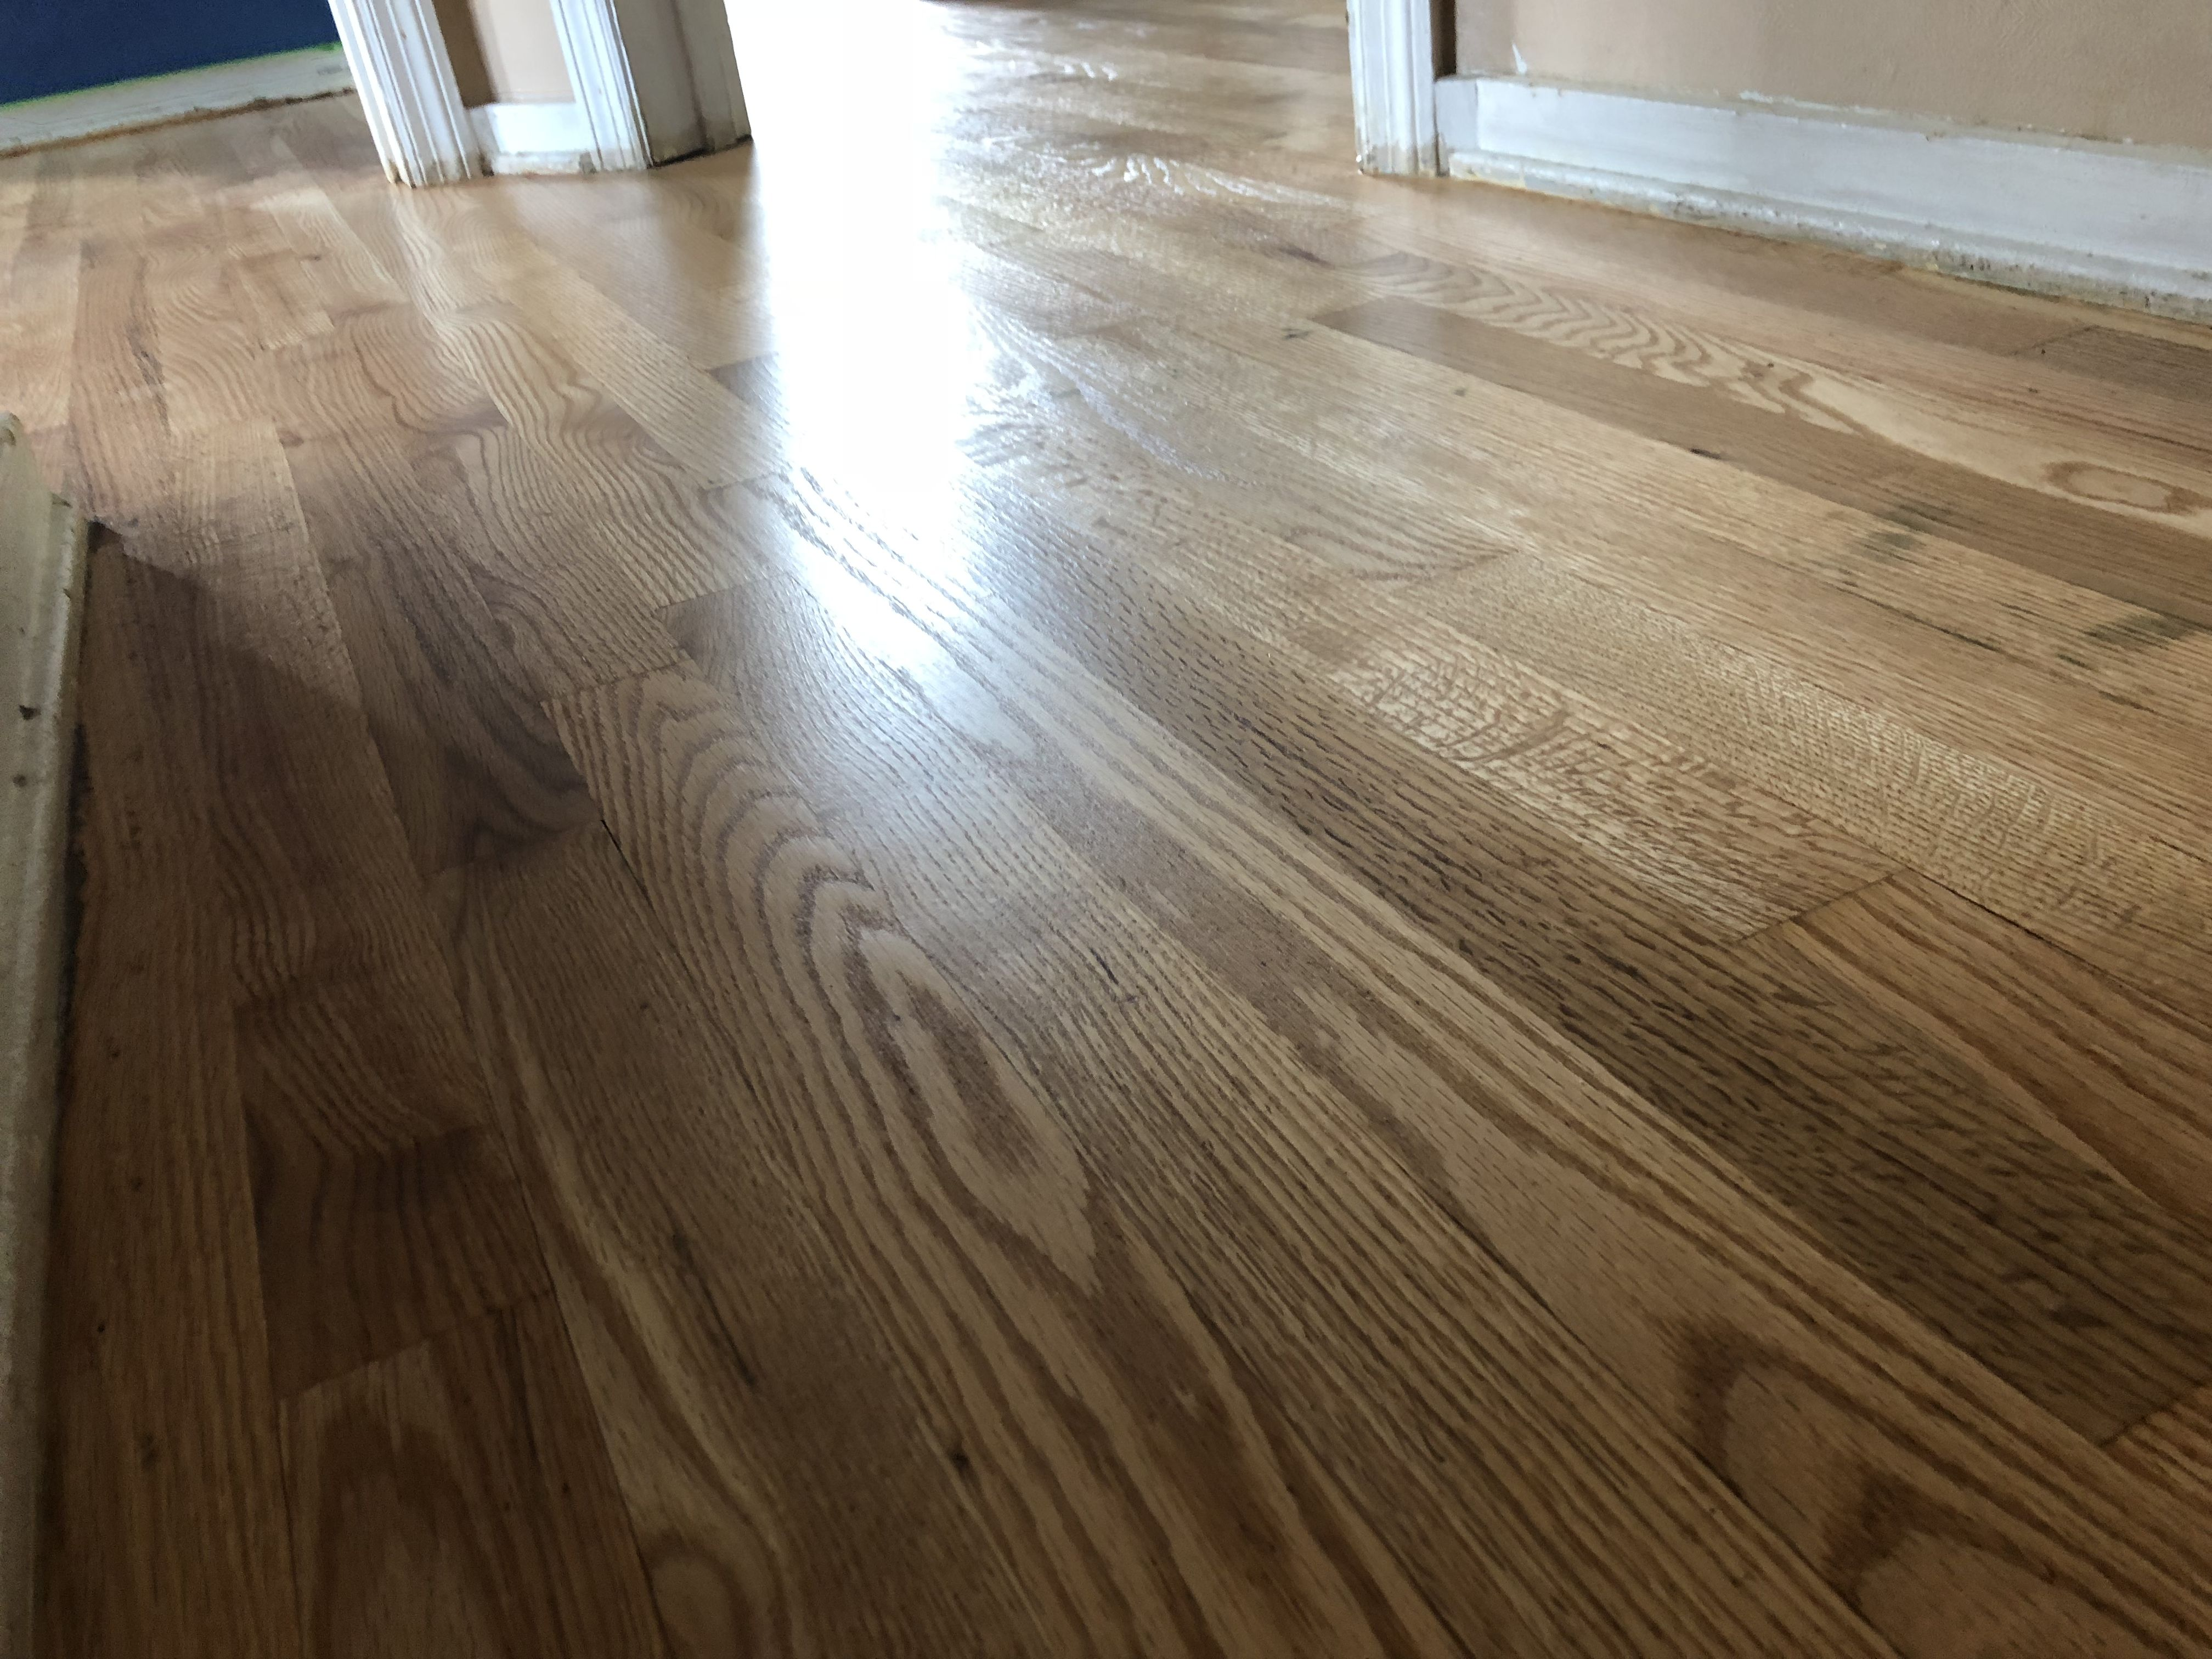 Semi Gloss Finish Hardwood Floor Refinish In Grand Rapids Michigan